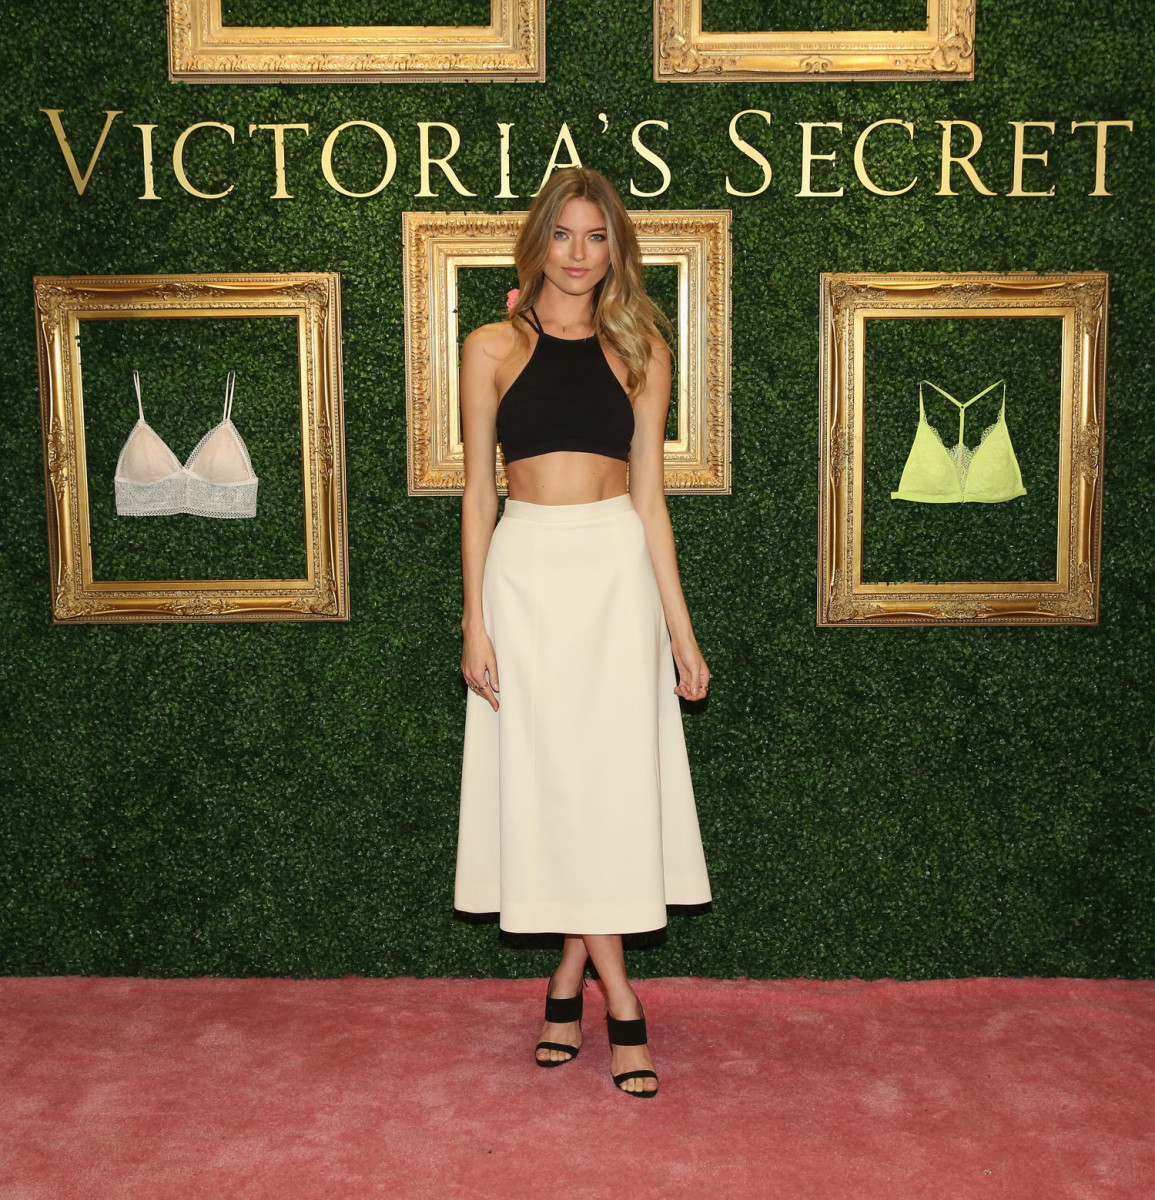 """""""NEW YORK, NEW YORK - APRIL 12: Victoria's Secret Angel Martha Hunt hosts global media live stream to reveal Bralette Collection & launch multi-city tour at Victoria's Secret Herald Square on April 12, 2016 in New York City (Photo by Cindy Ord/Getty Images for Victoria's Secret)"""""""